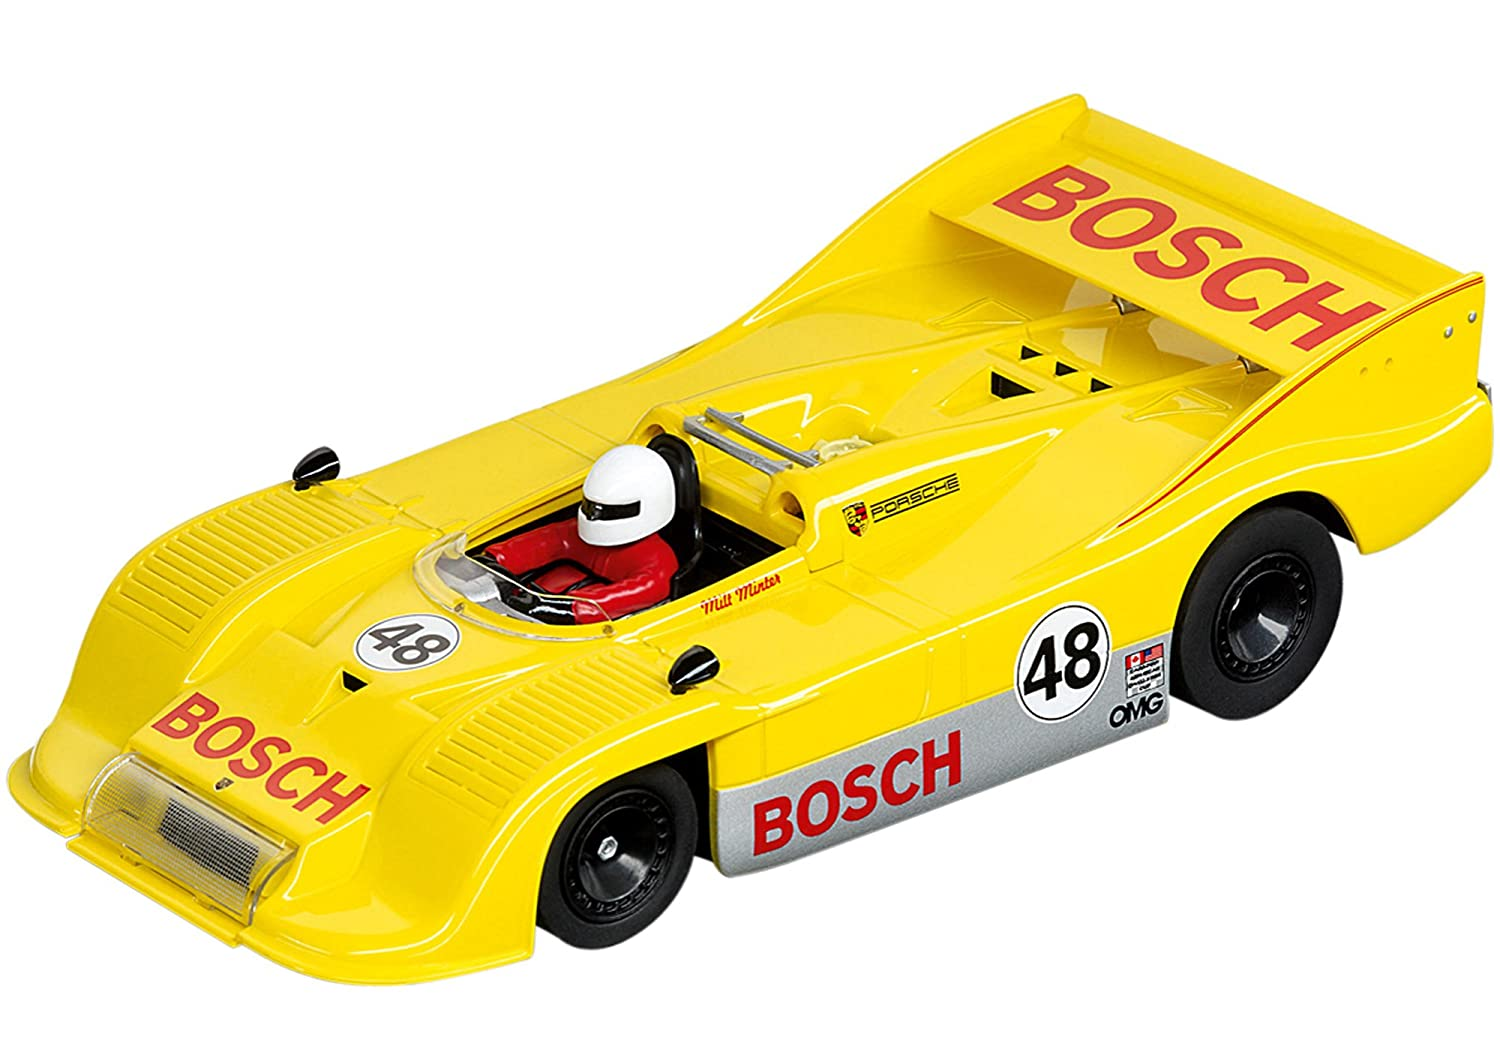 Carrera Evolution Porsche 917/30 48 20027367 (Japan-Import)